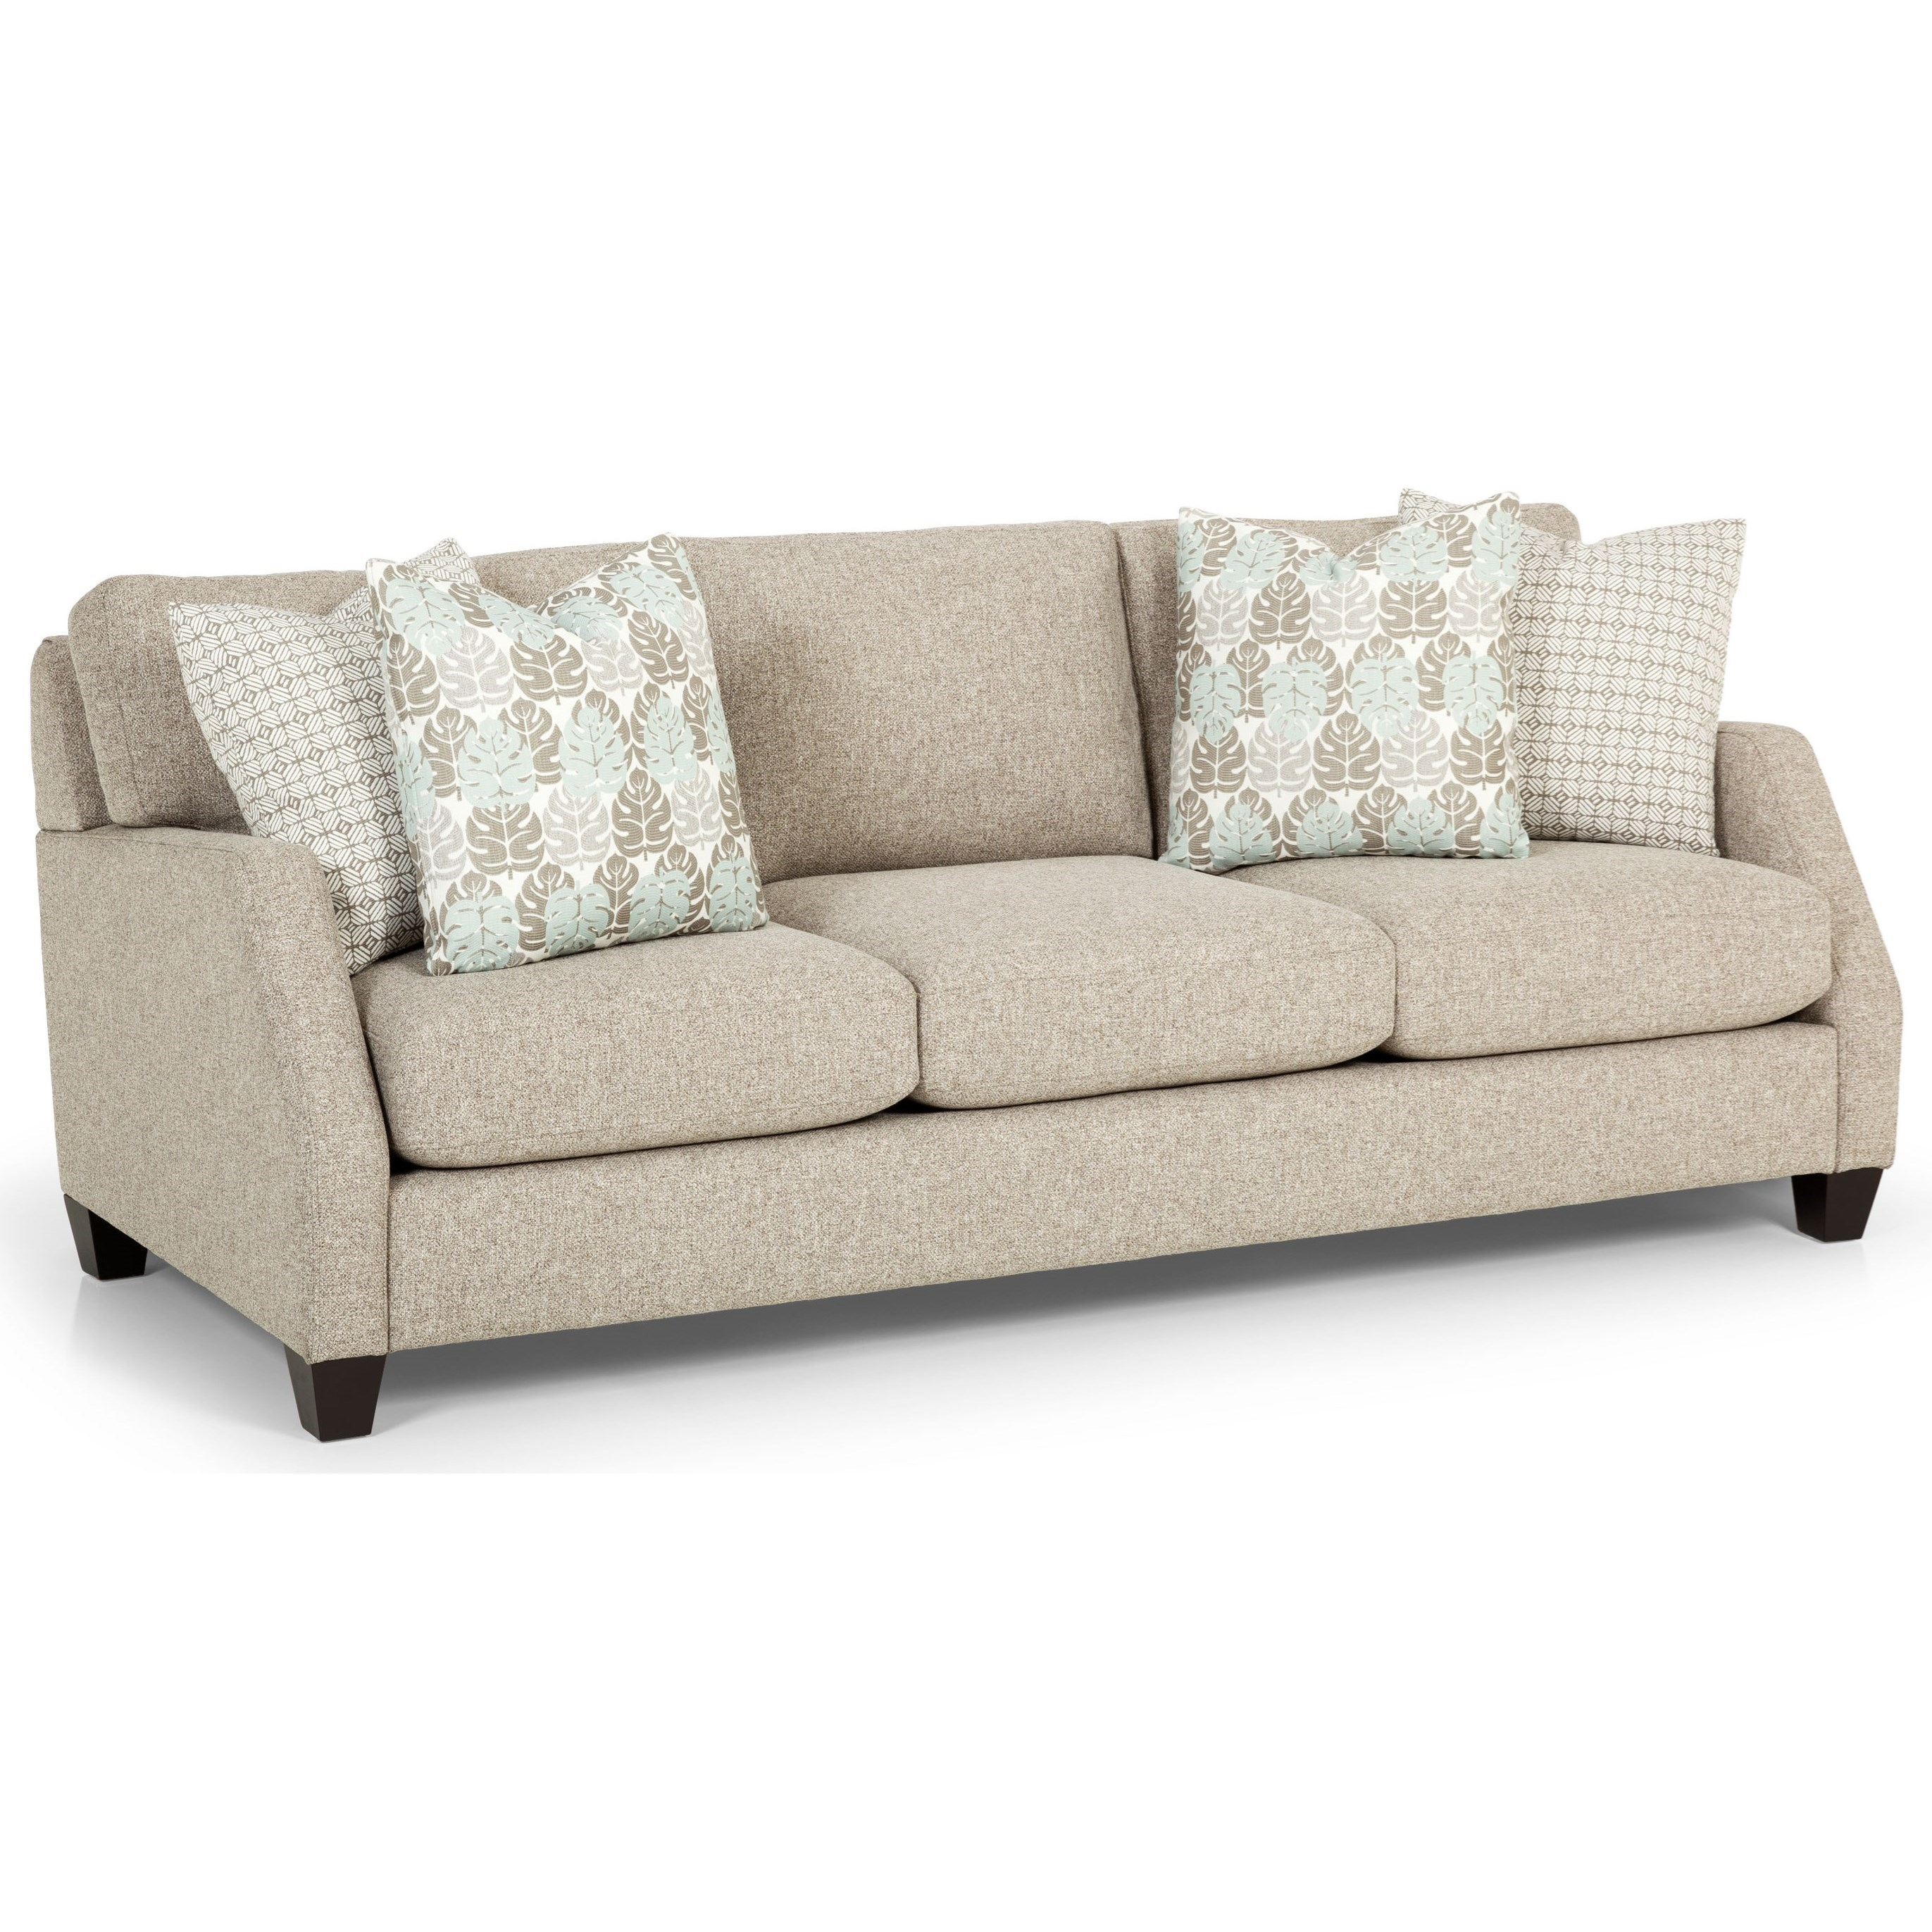 389 Sofa by Stanton at Wilson's Furniture